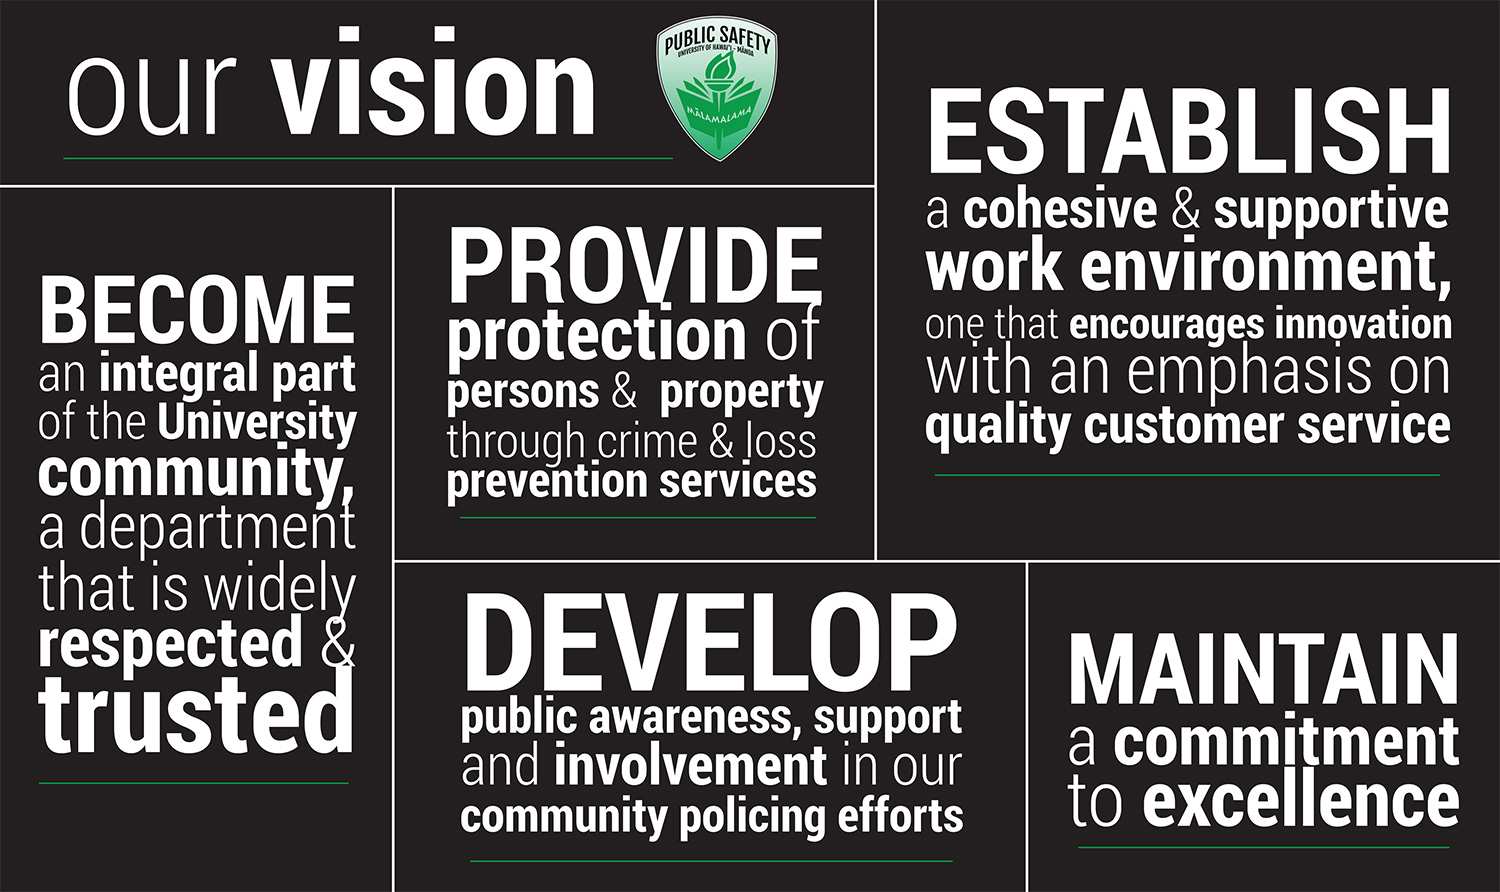 Our Vision: Become an integral part of the University community, a department that is widely respected and trusted. Provide protection of persons and property through crime and loss prevention services. Develop public awareness, support and involvedment in our community policing efforts. Establish a cohesive and supportive work environment, one that encourages innovation with an emphasis on quality customer service. Maintain a commitment to excellence.